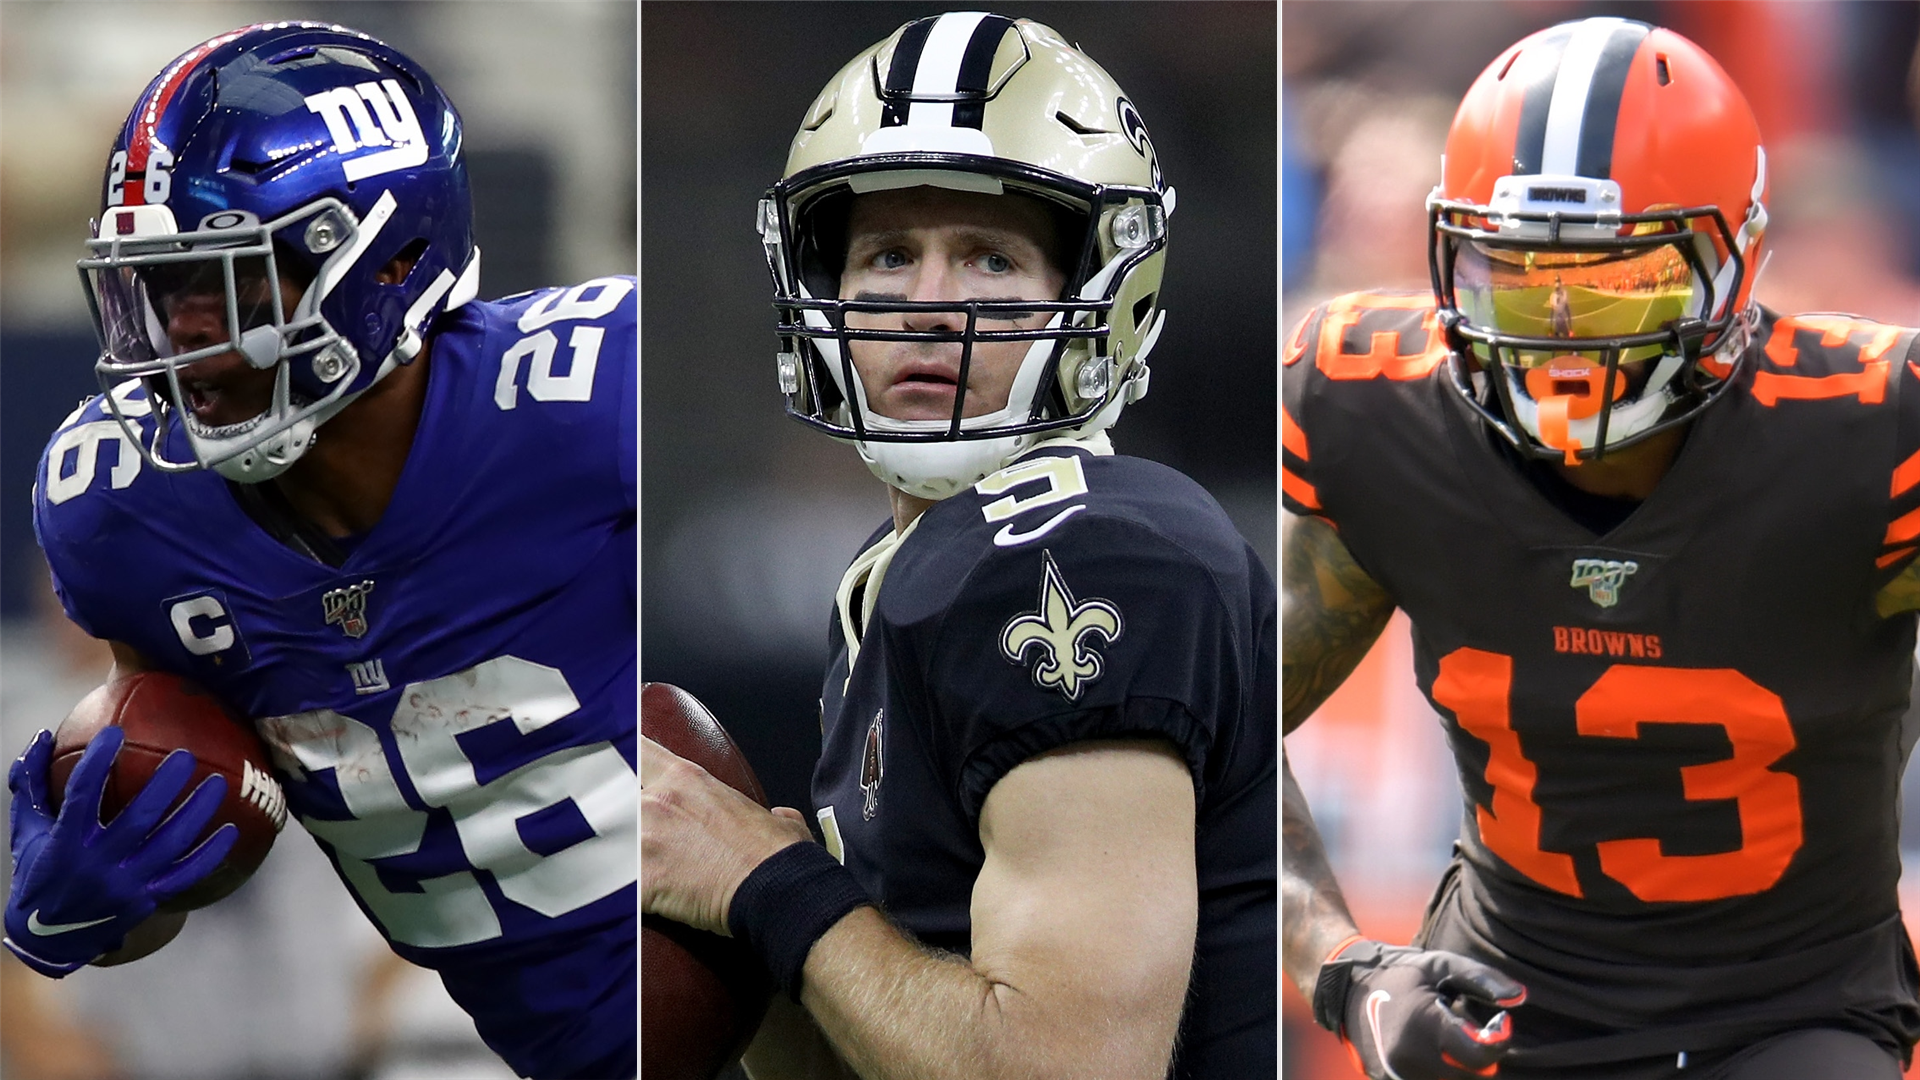 NFL Week 2 game-by-game betting guide: Odds, matchups, stats trends, injury report